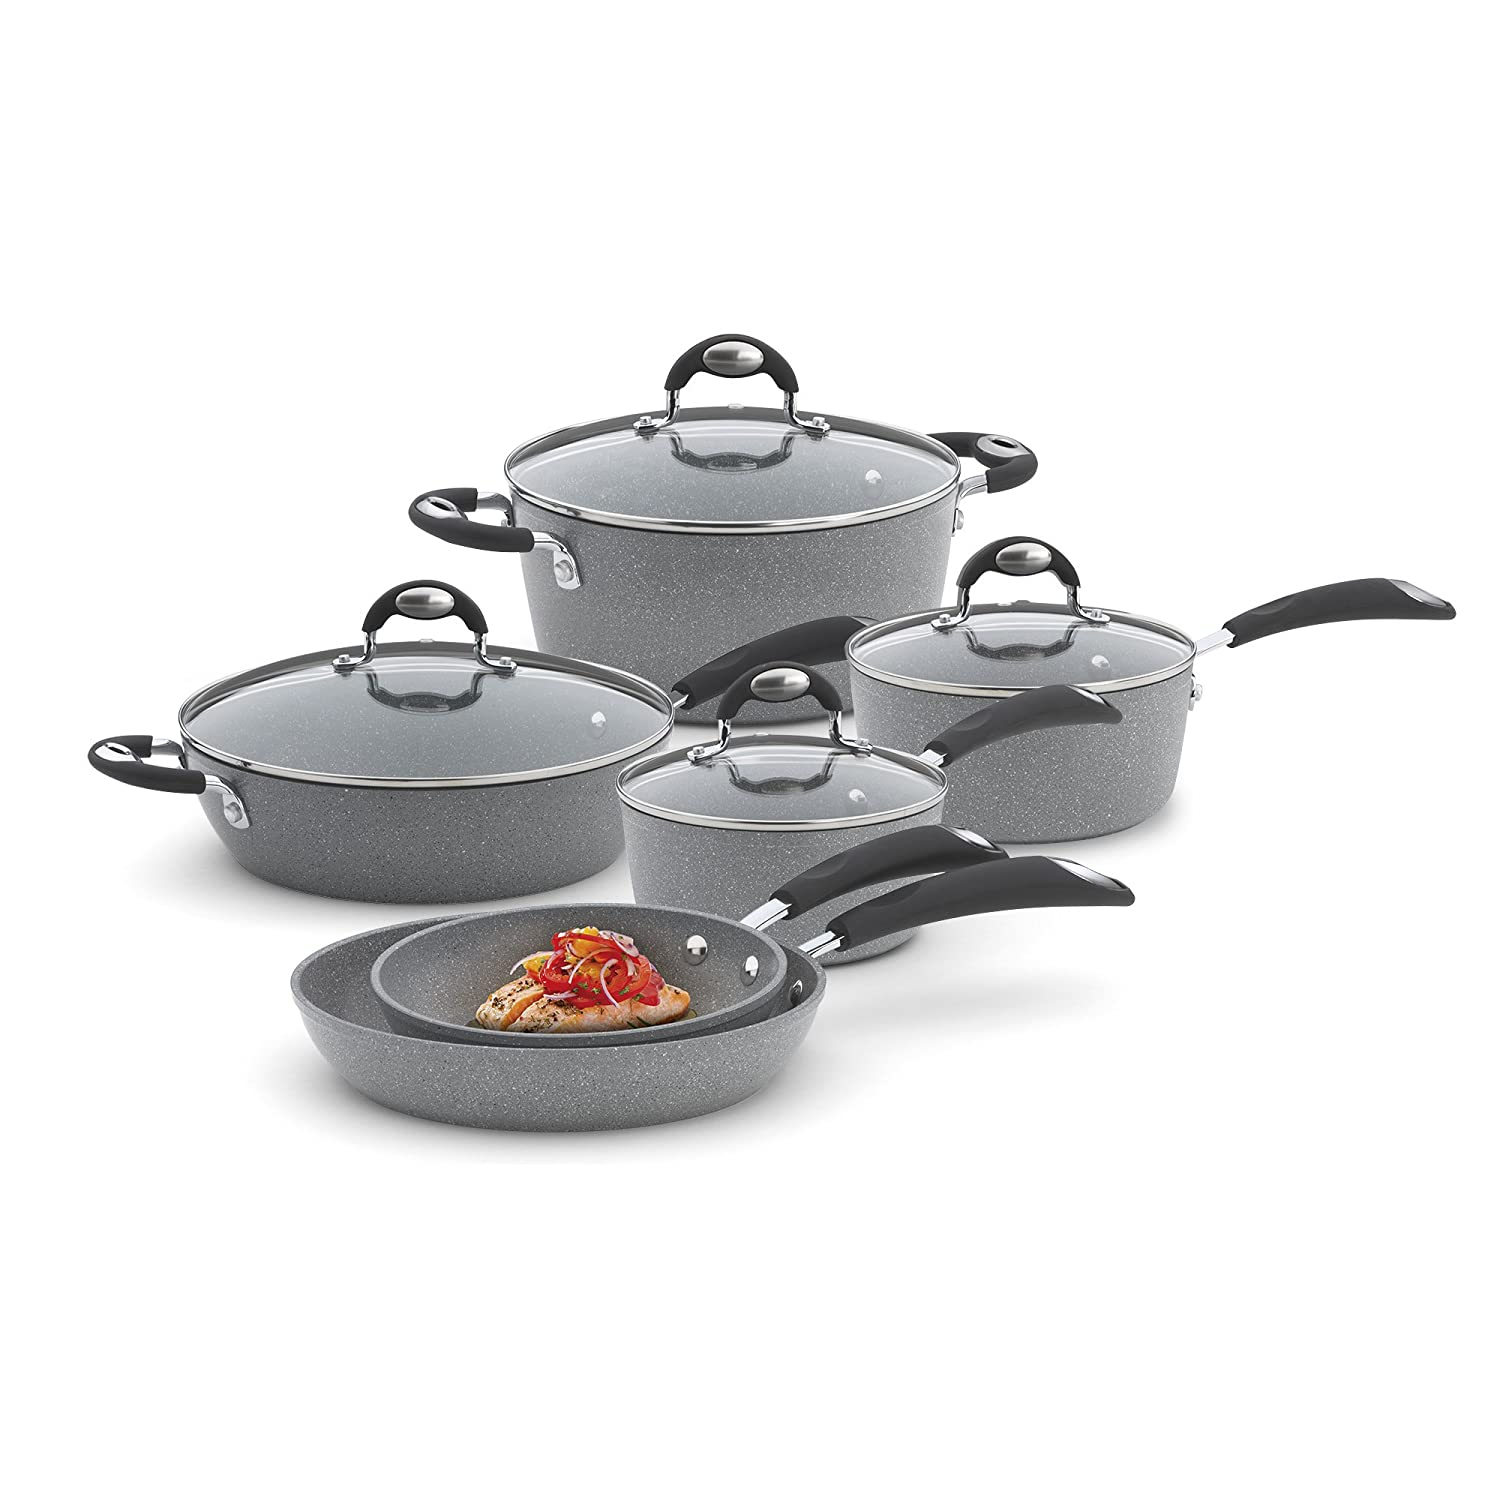 Bialetti Nonstick Cookware Set